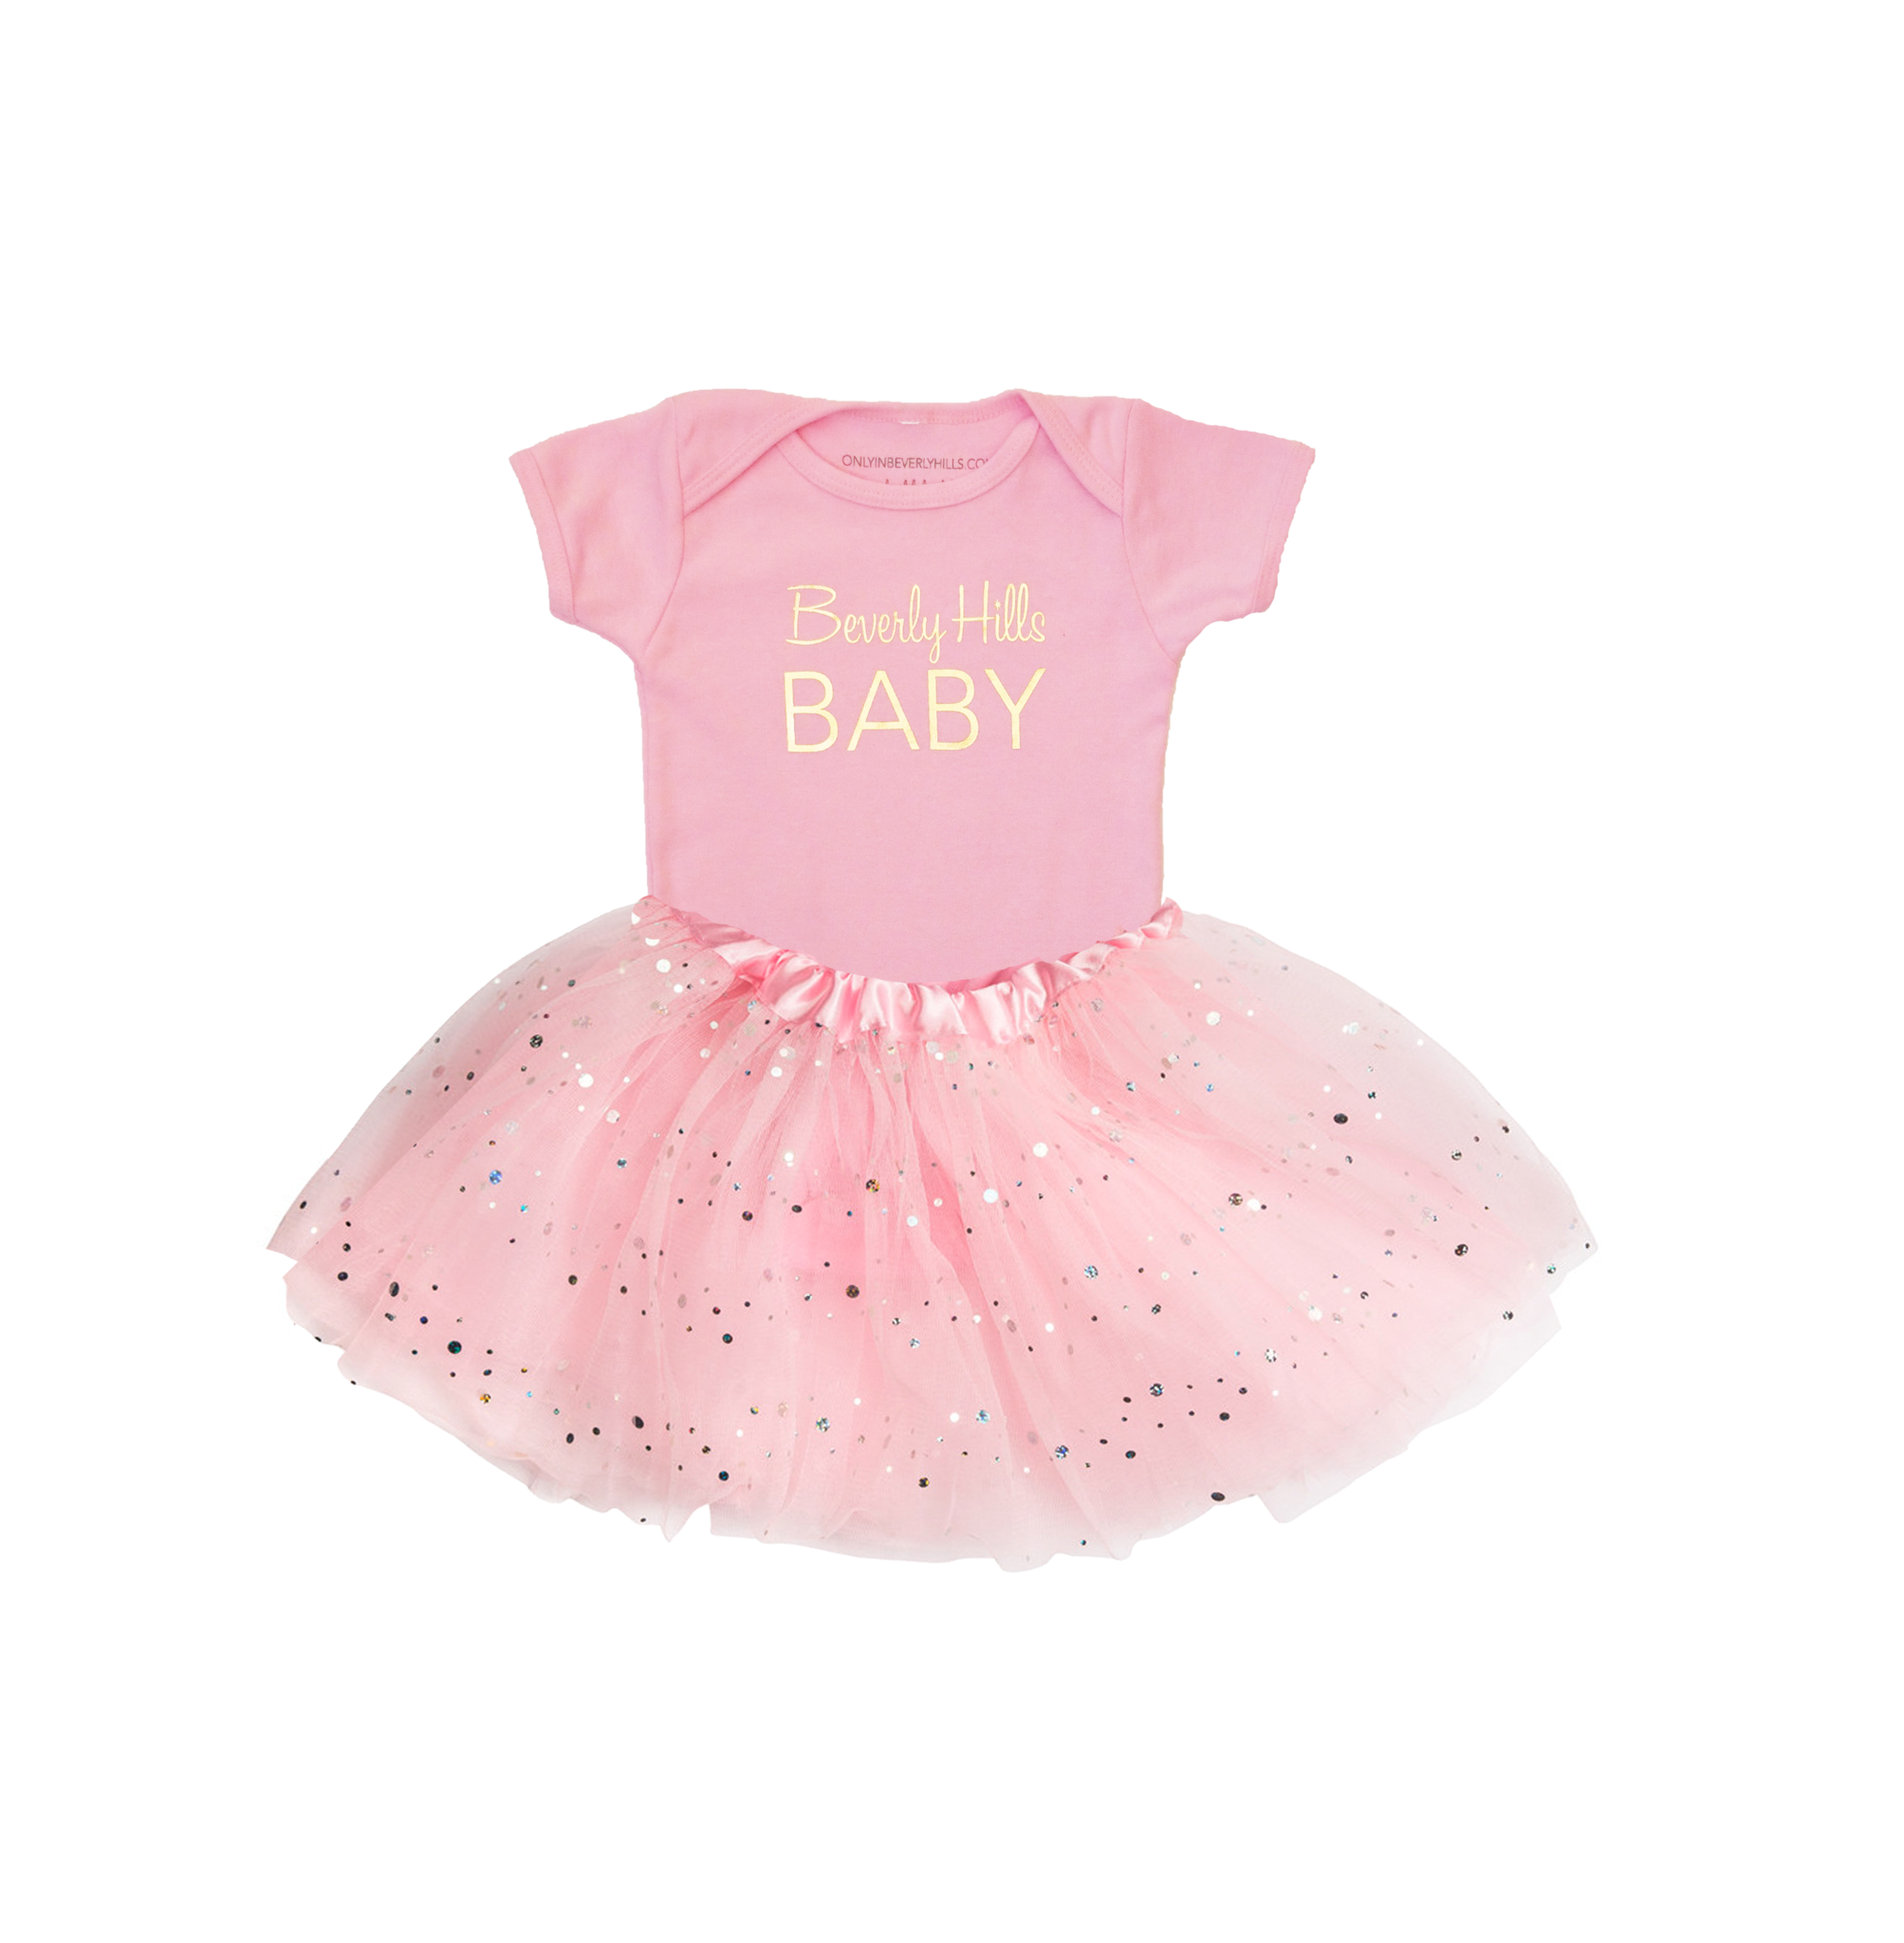 Beverly Hills baby girl onesie and tutu pink and gold PlusPng.com  - Baby Tutu PNG